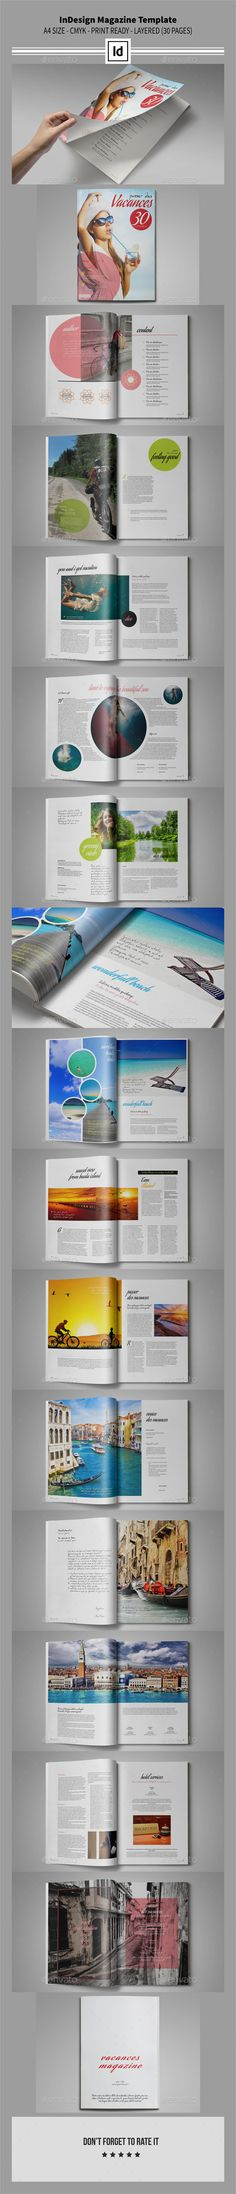 InDesign Magazine Template 30 Pages | Download: http://graphicriver.net/item/indesign-magazine-template-30-pages/10098528?ref=ksioks